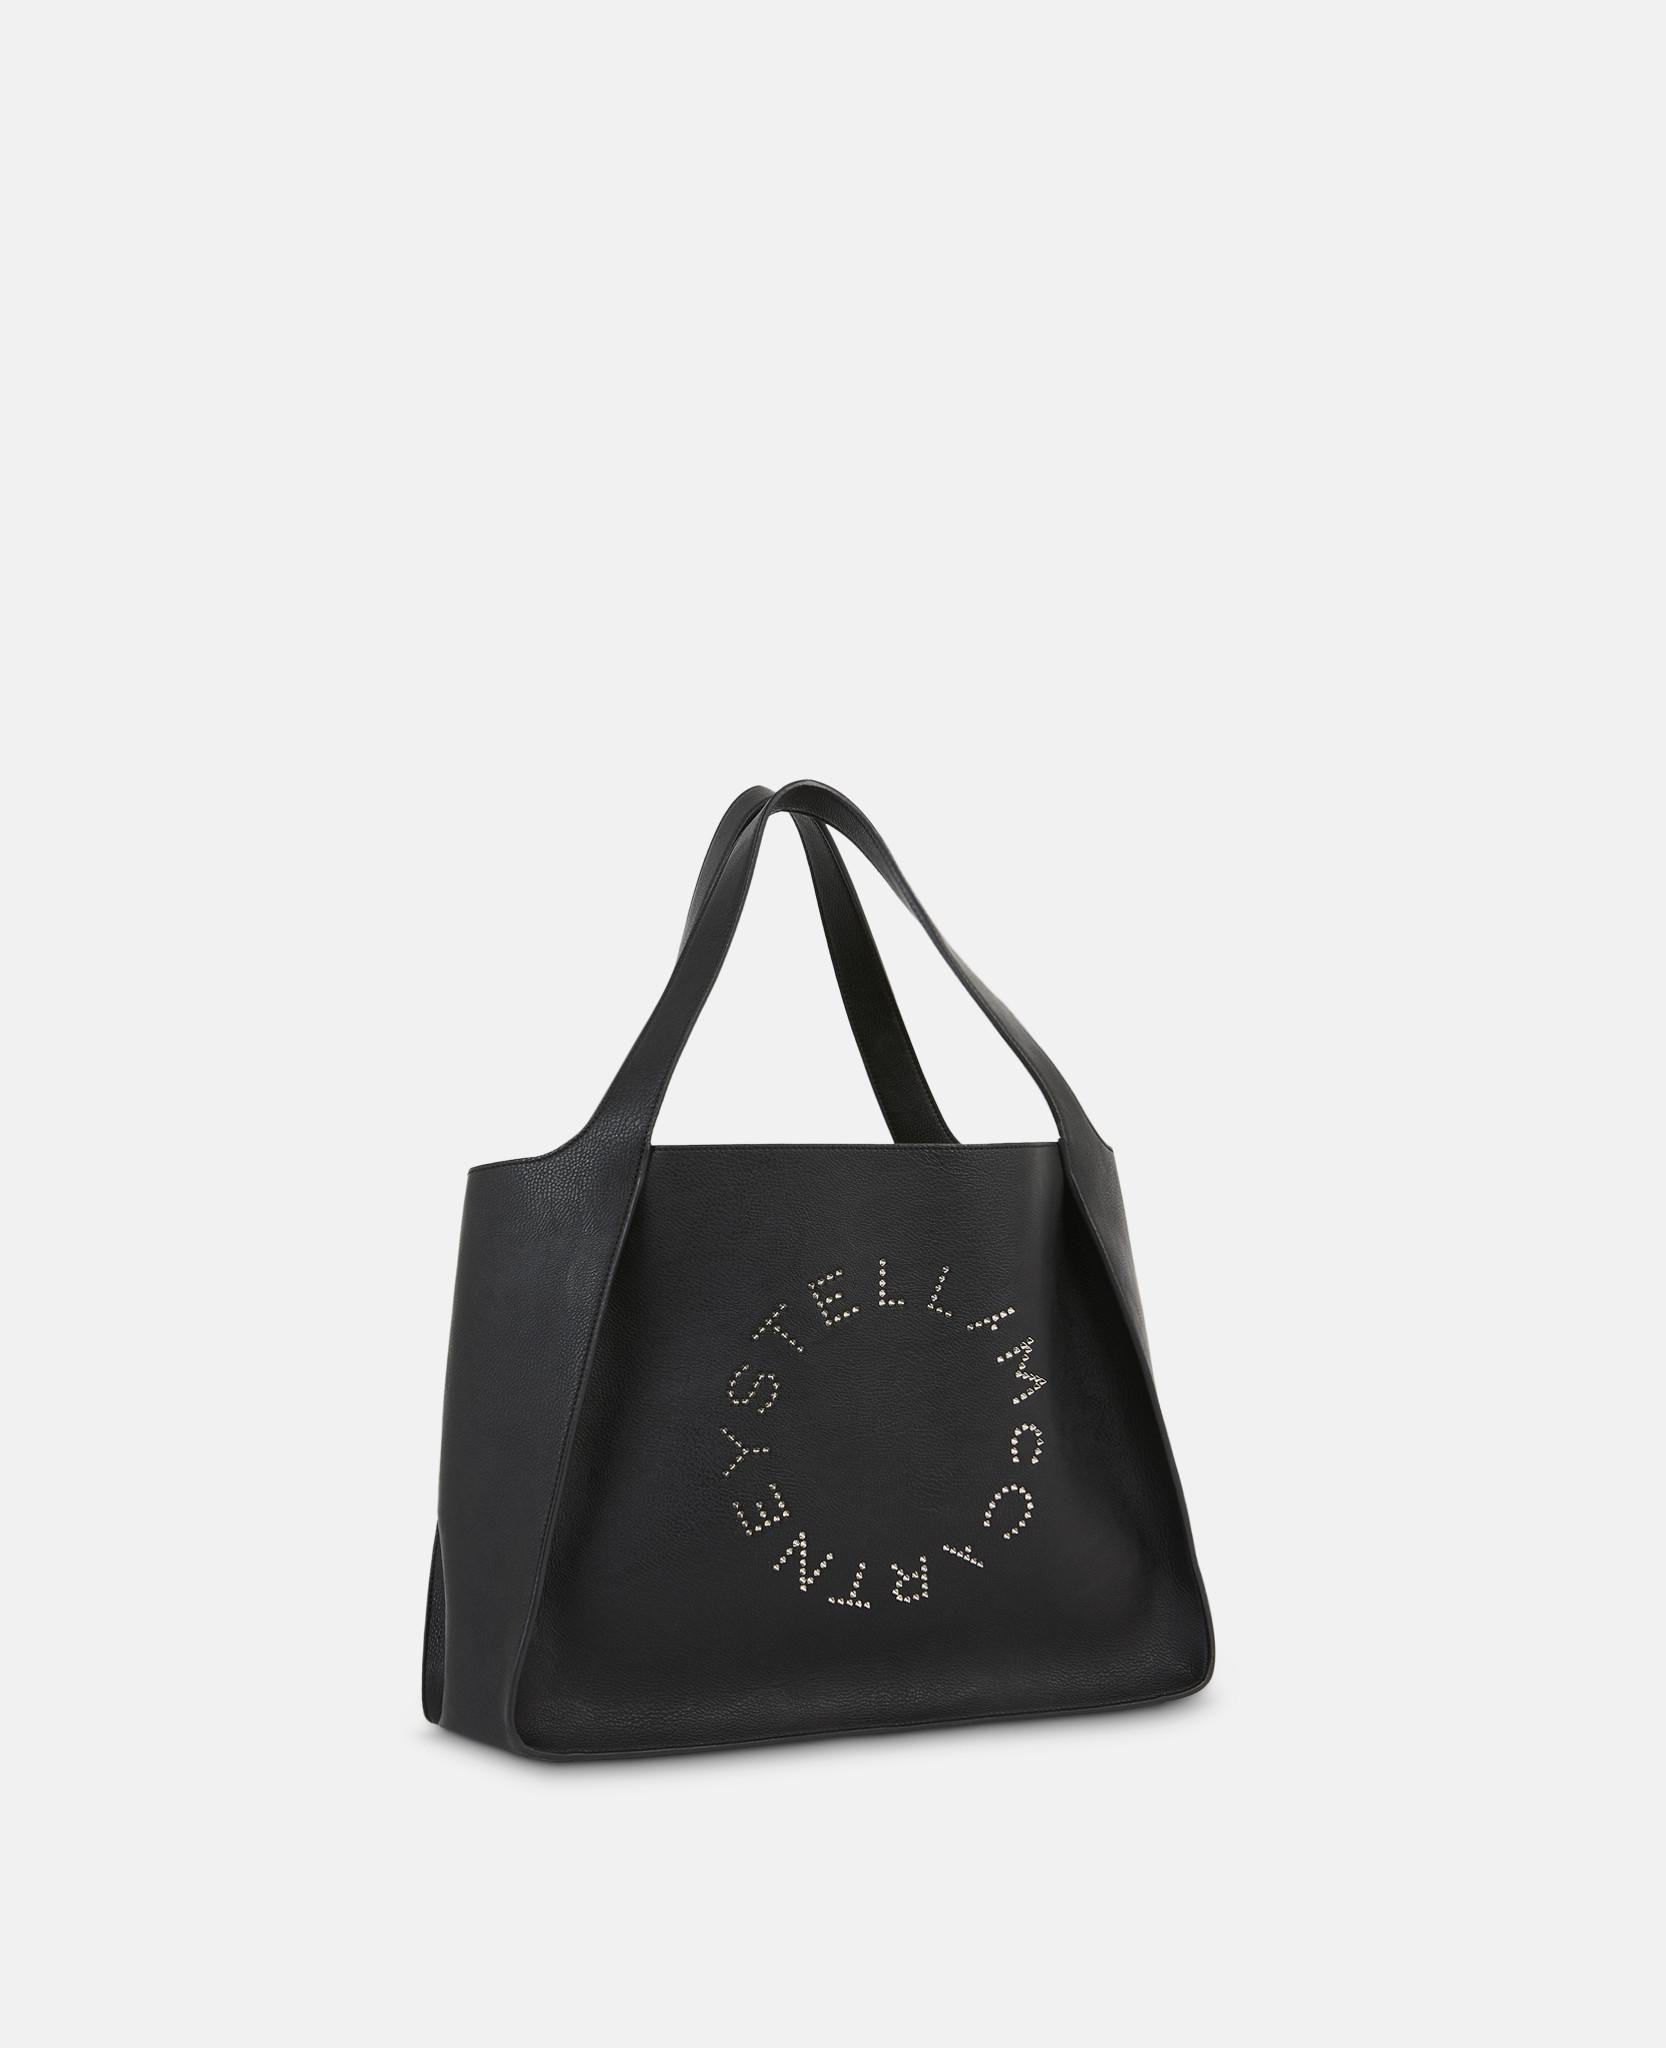 90b30d180797 Lyst - Stella McCartney Stella Studded Logo Tote Bag in Black - Save 33%